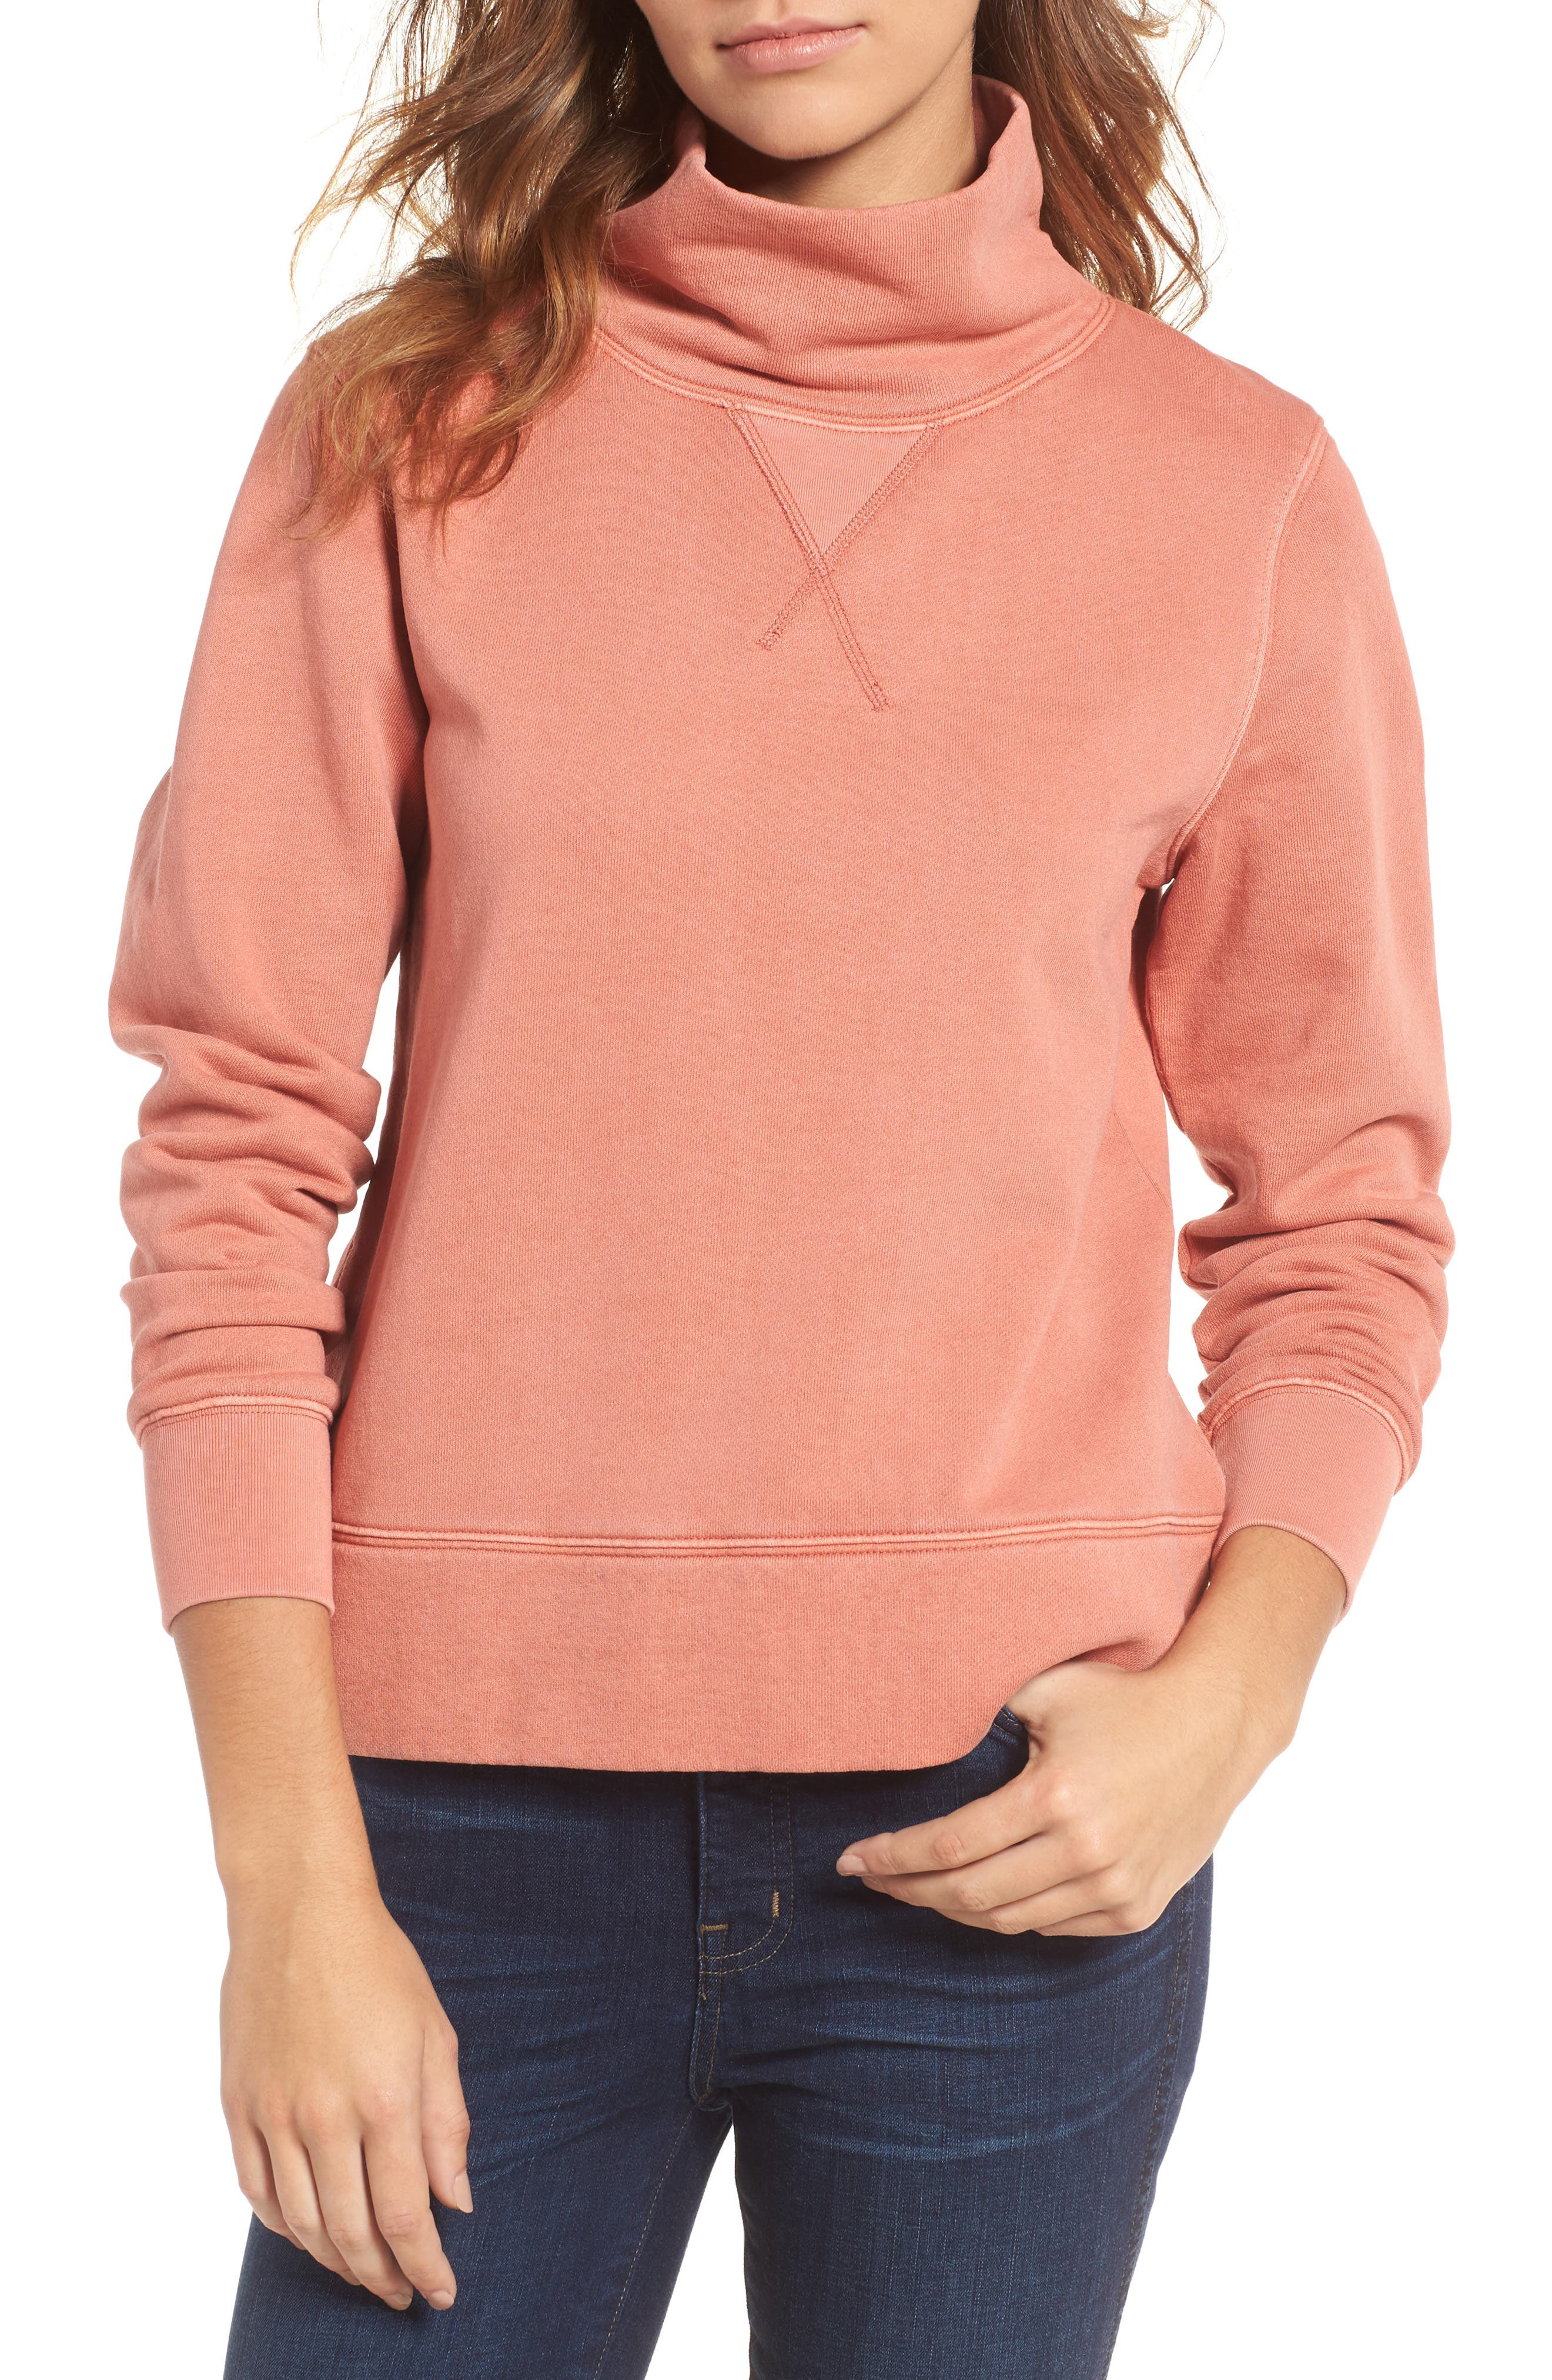 Alternate Image 1 Selected - Madewell Garment Dyed Funnel Neck Sweatshirt